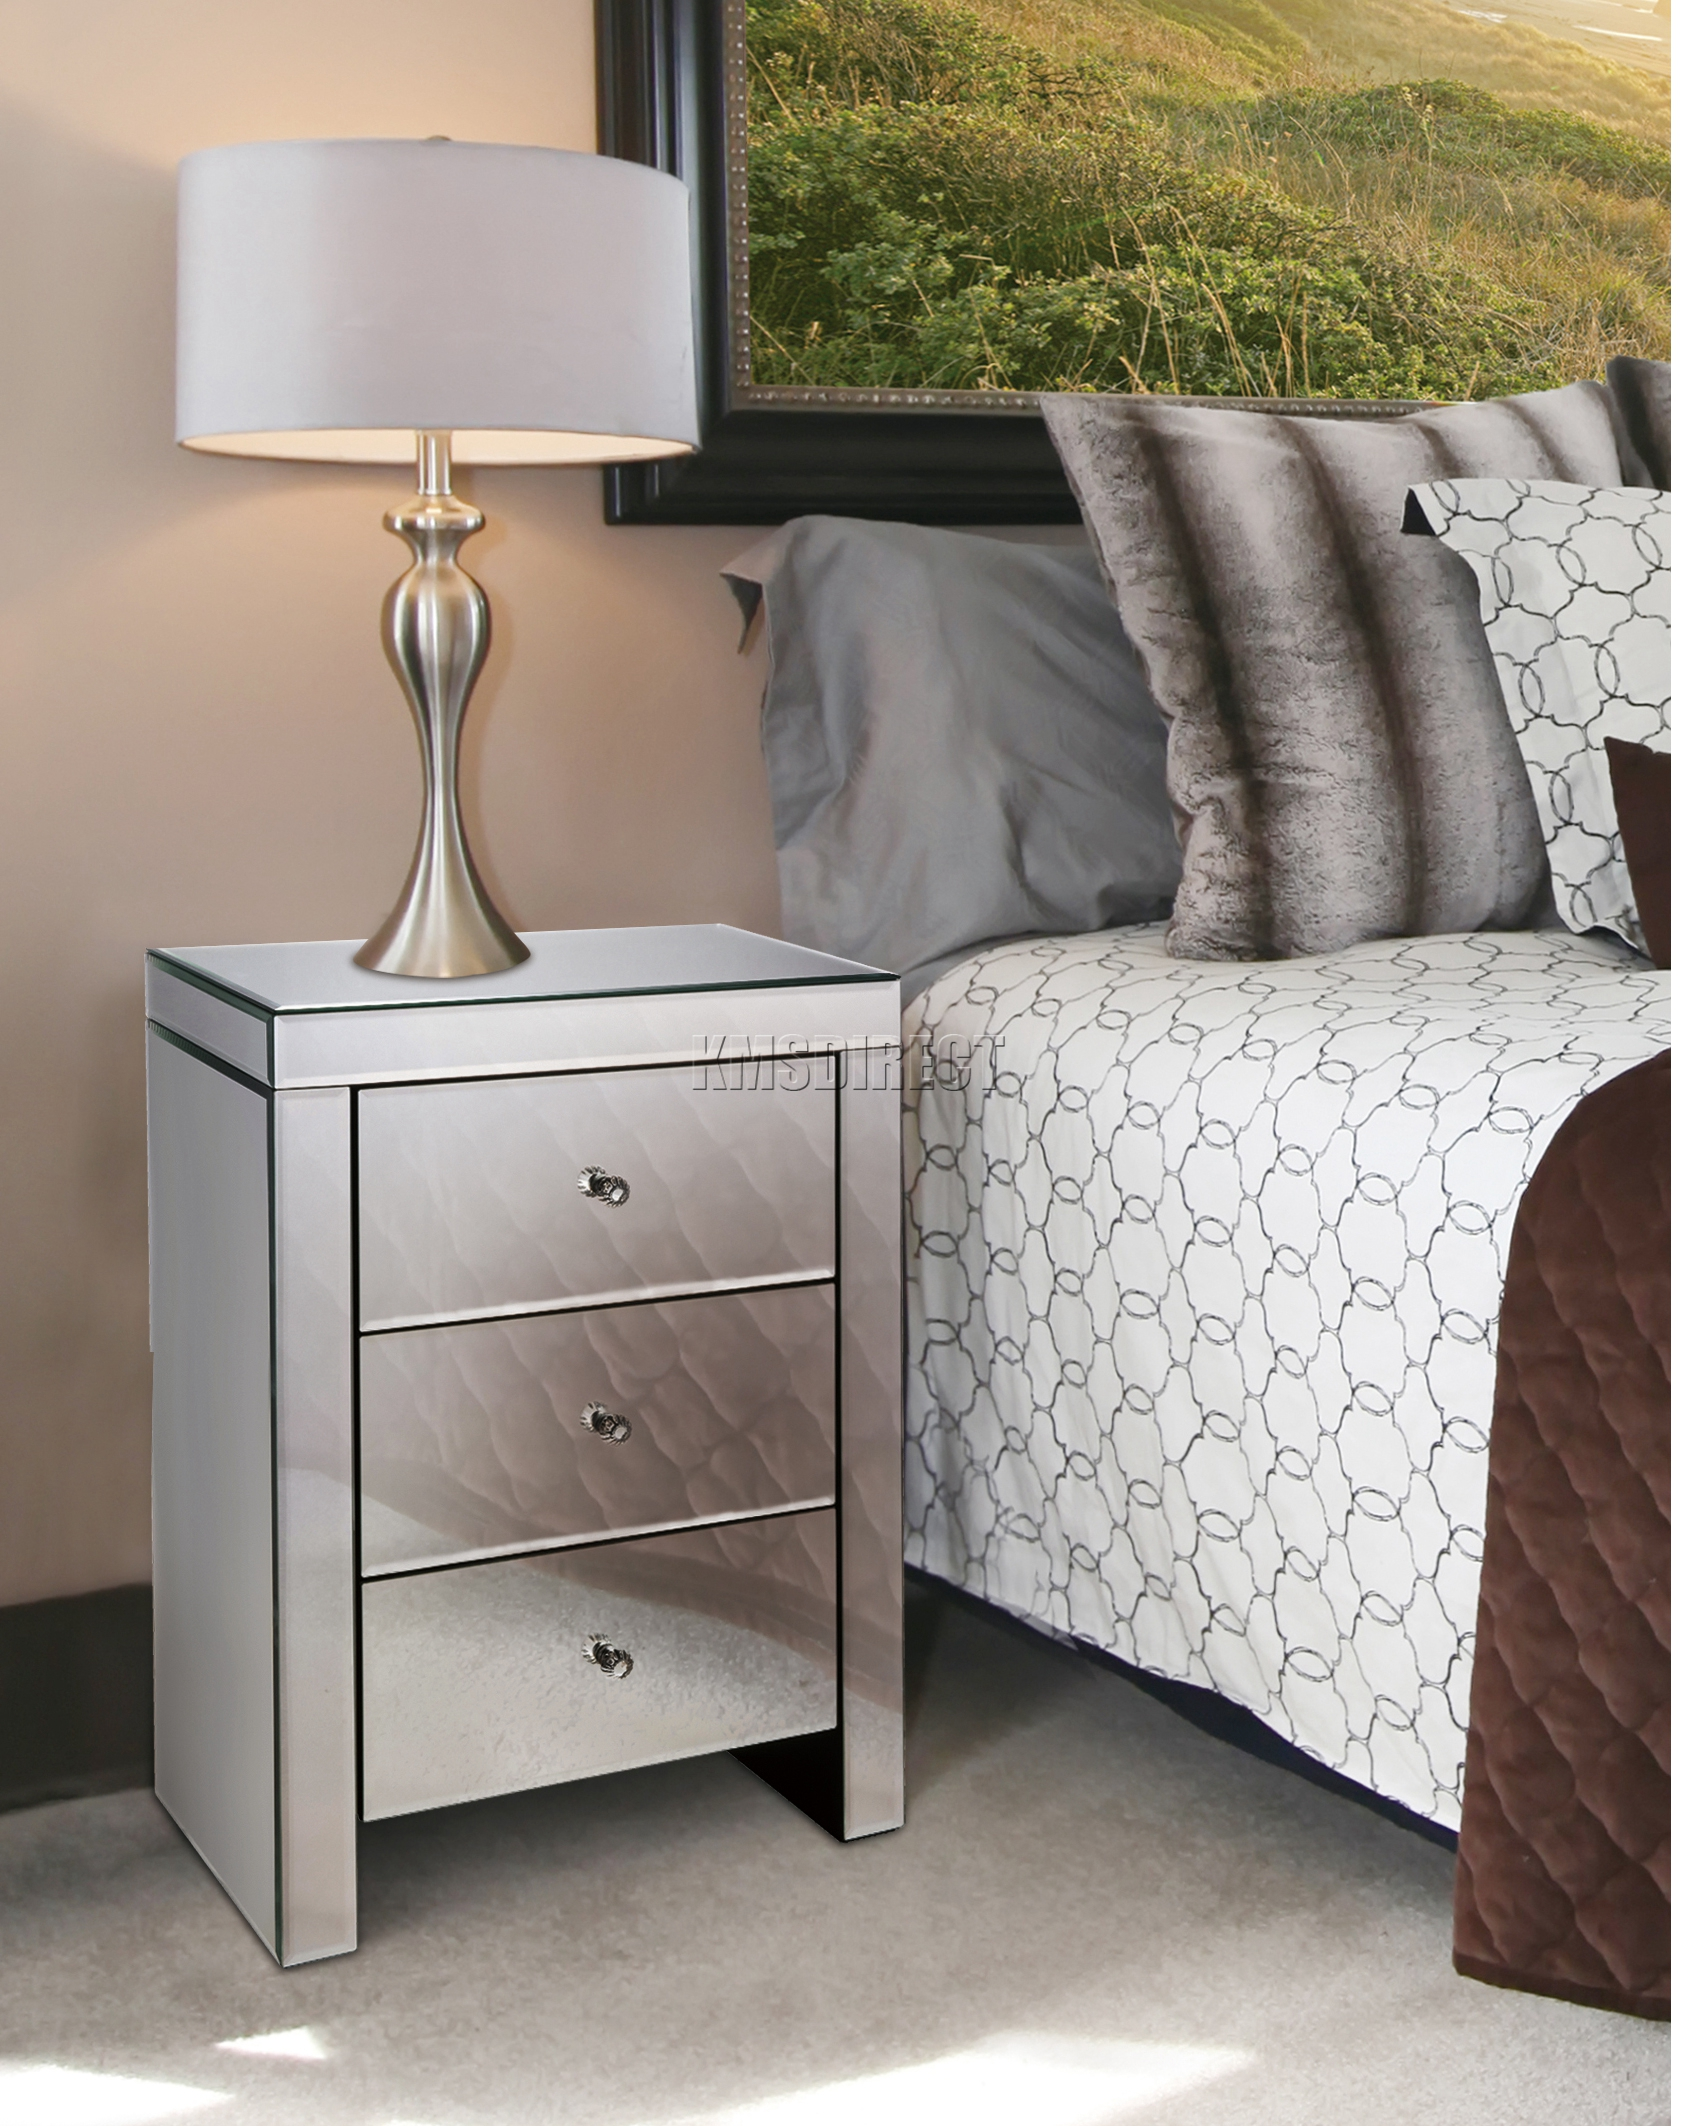 mirrored furniture glass 3 drawer bedside cabinet table bedroom mbc01